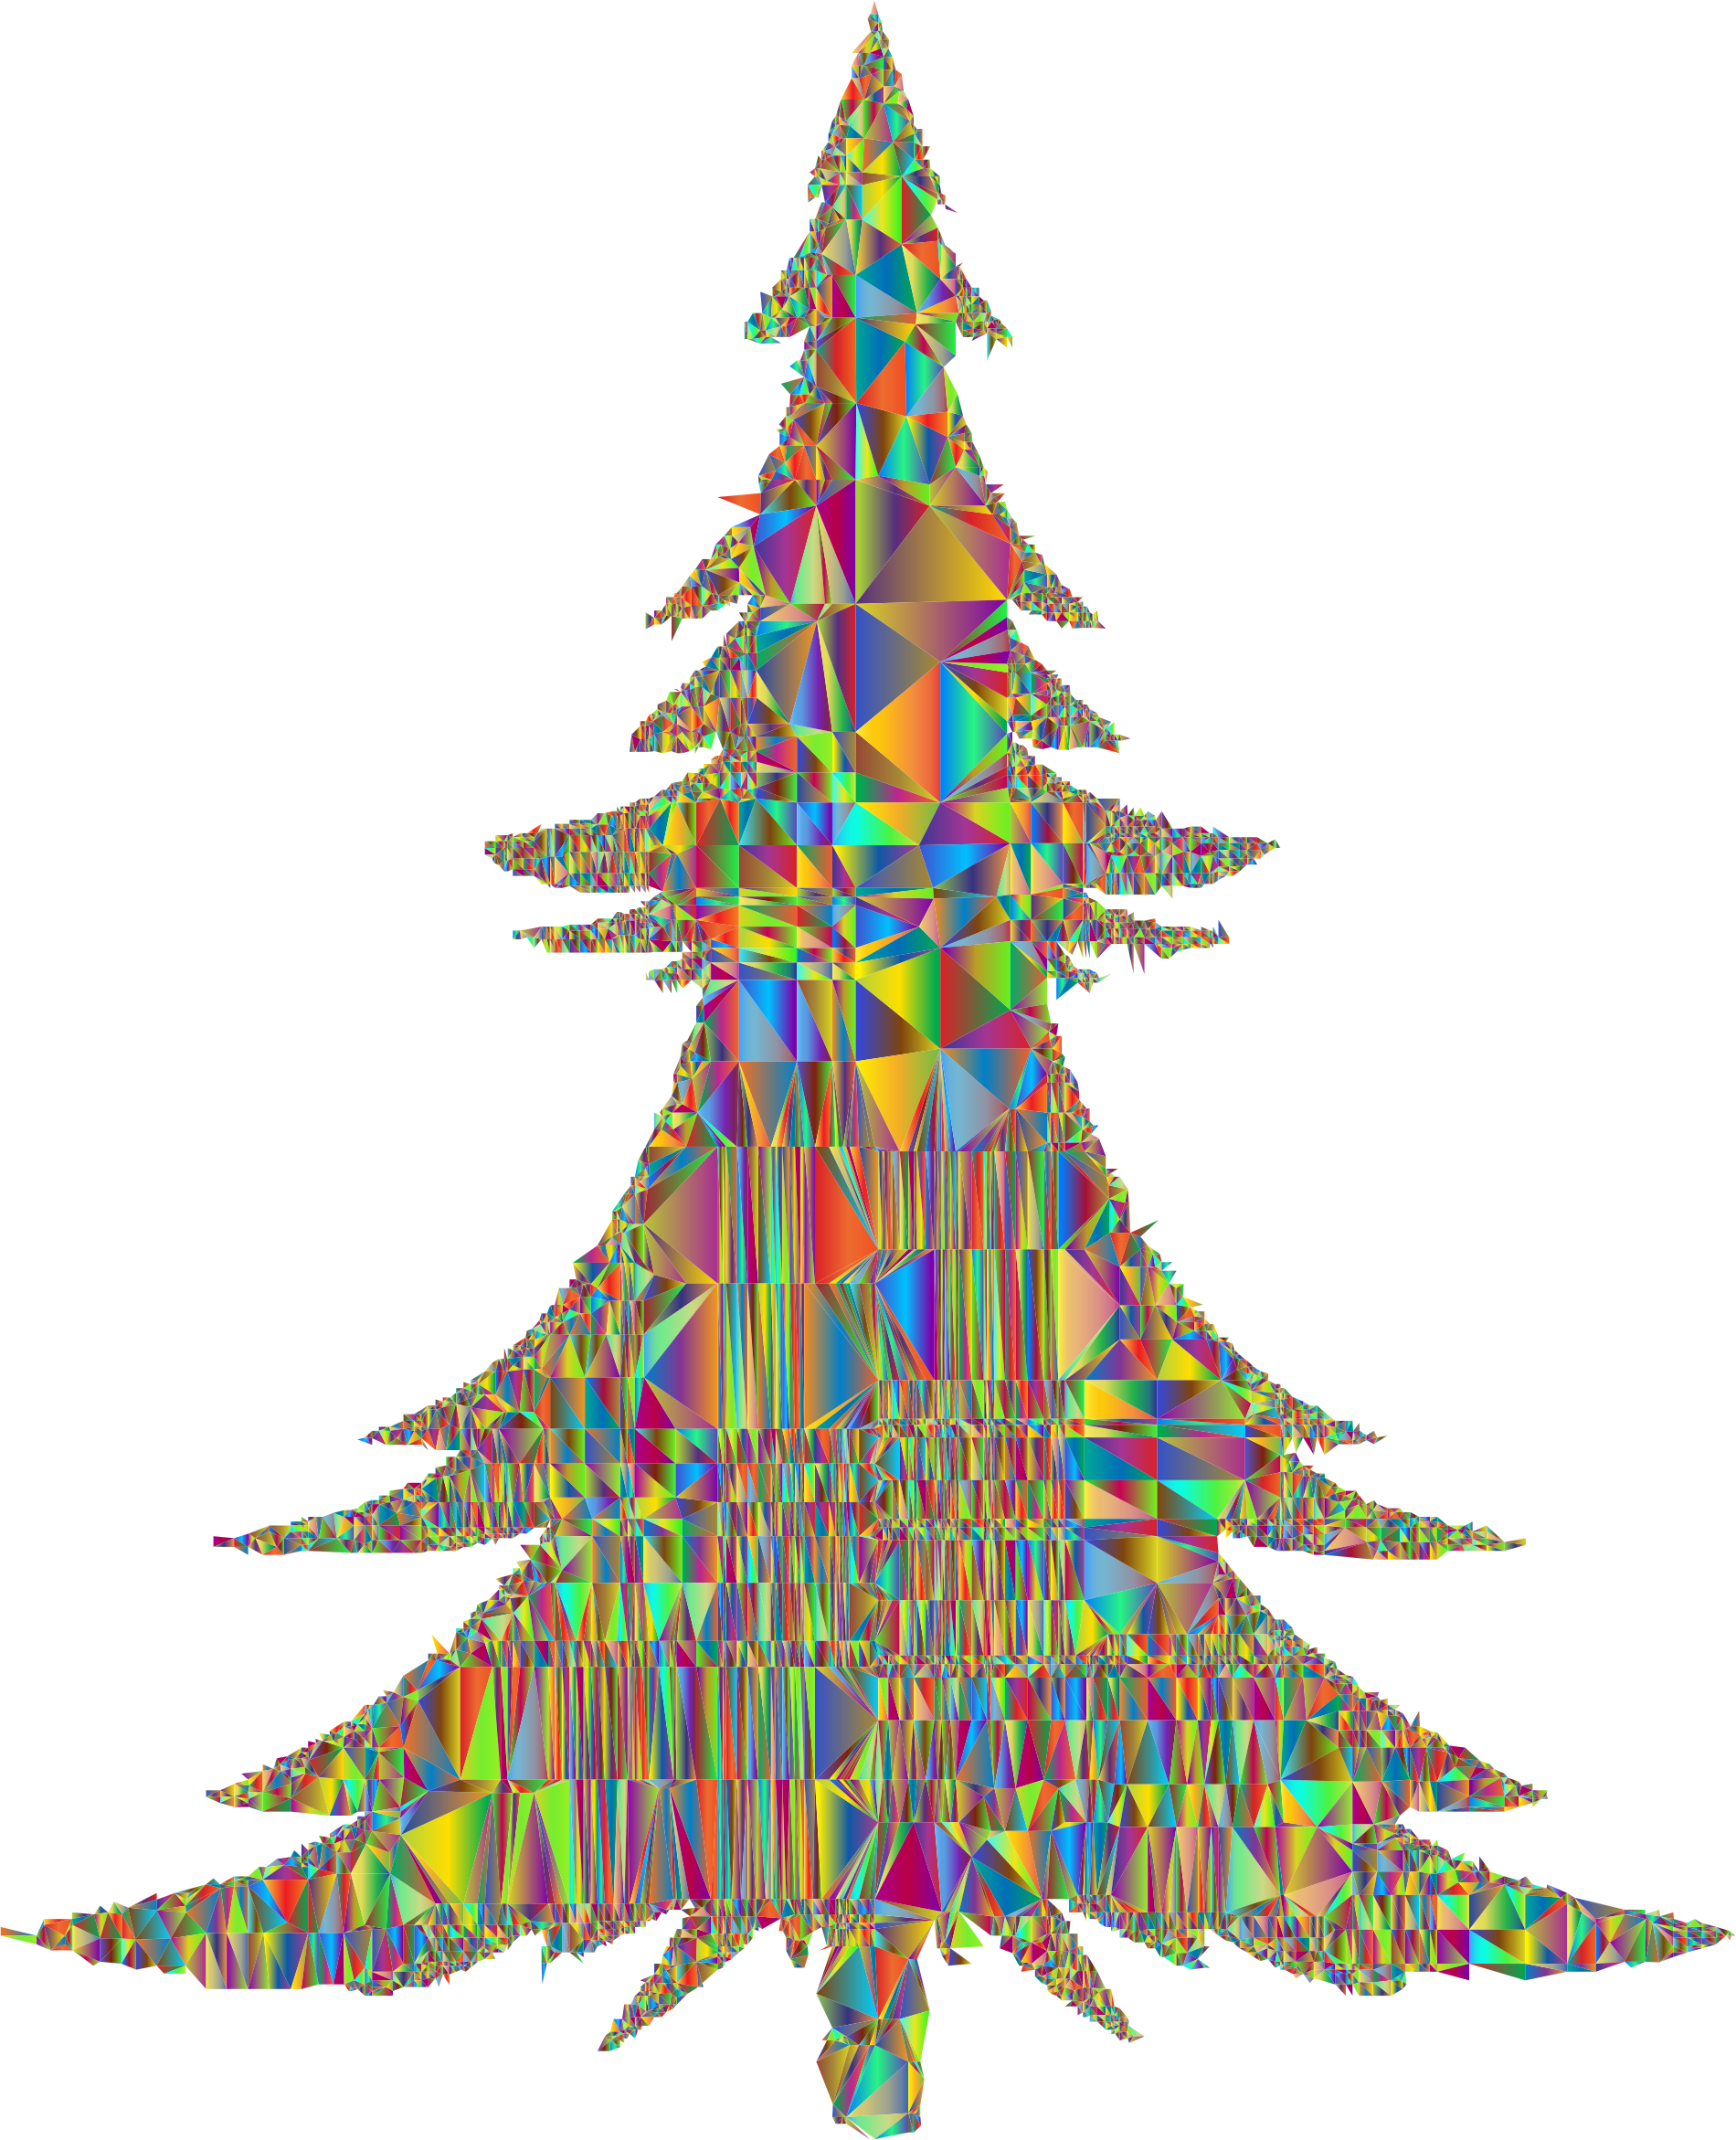 Abstract Christmas Tree Mesh Polyprismatic by GDJ